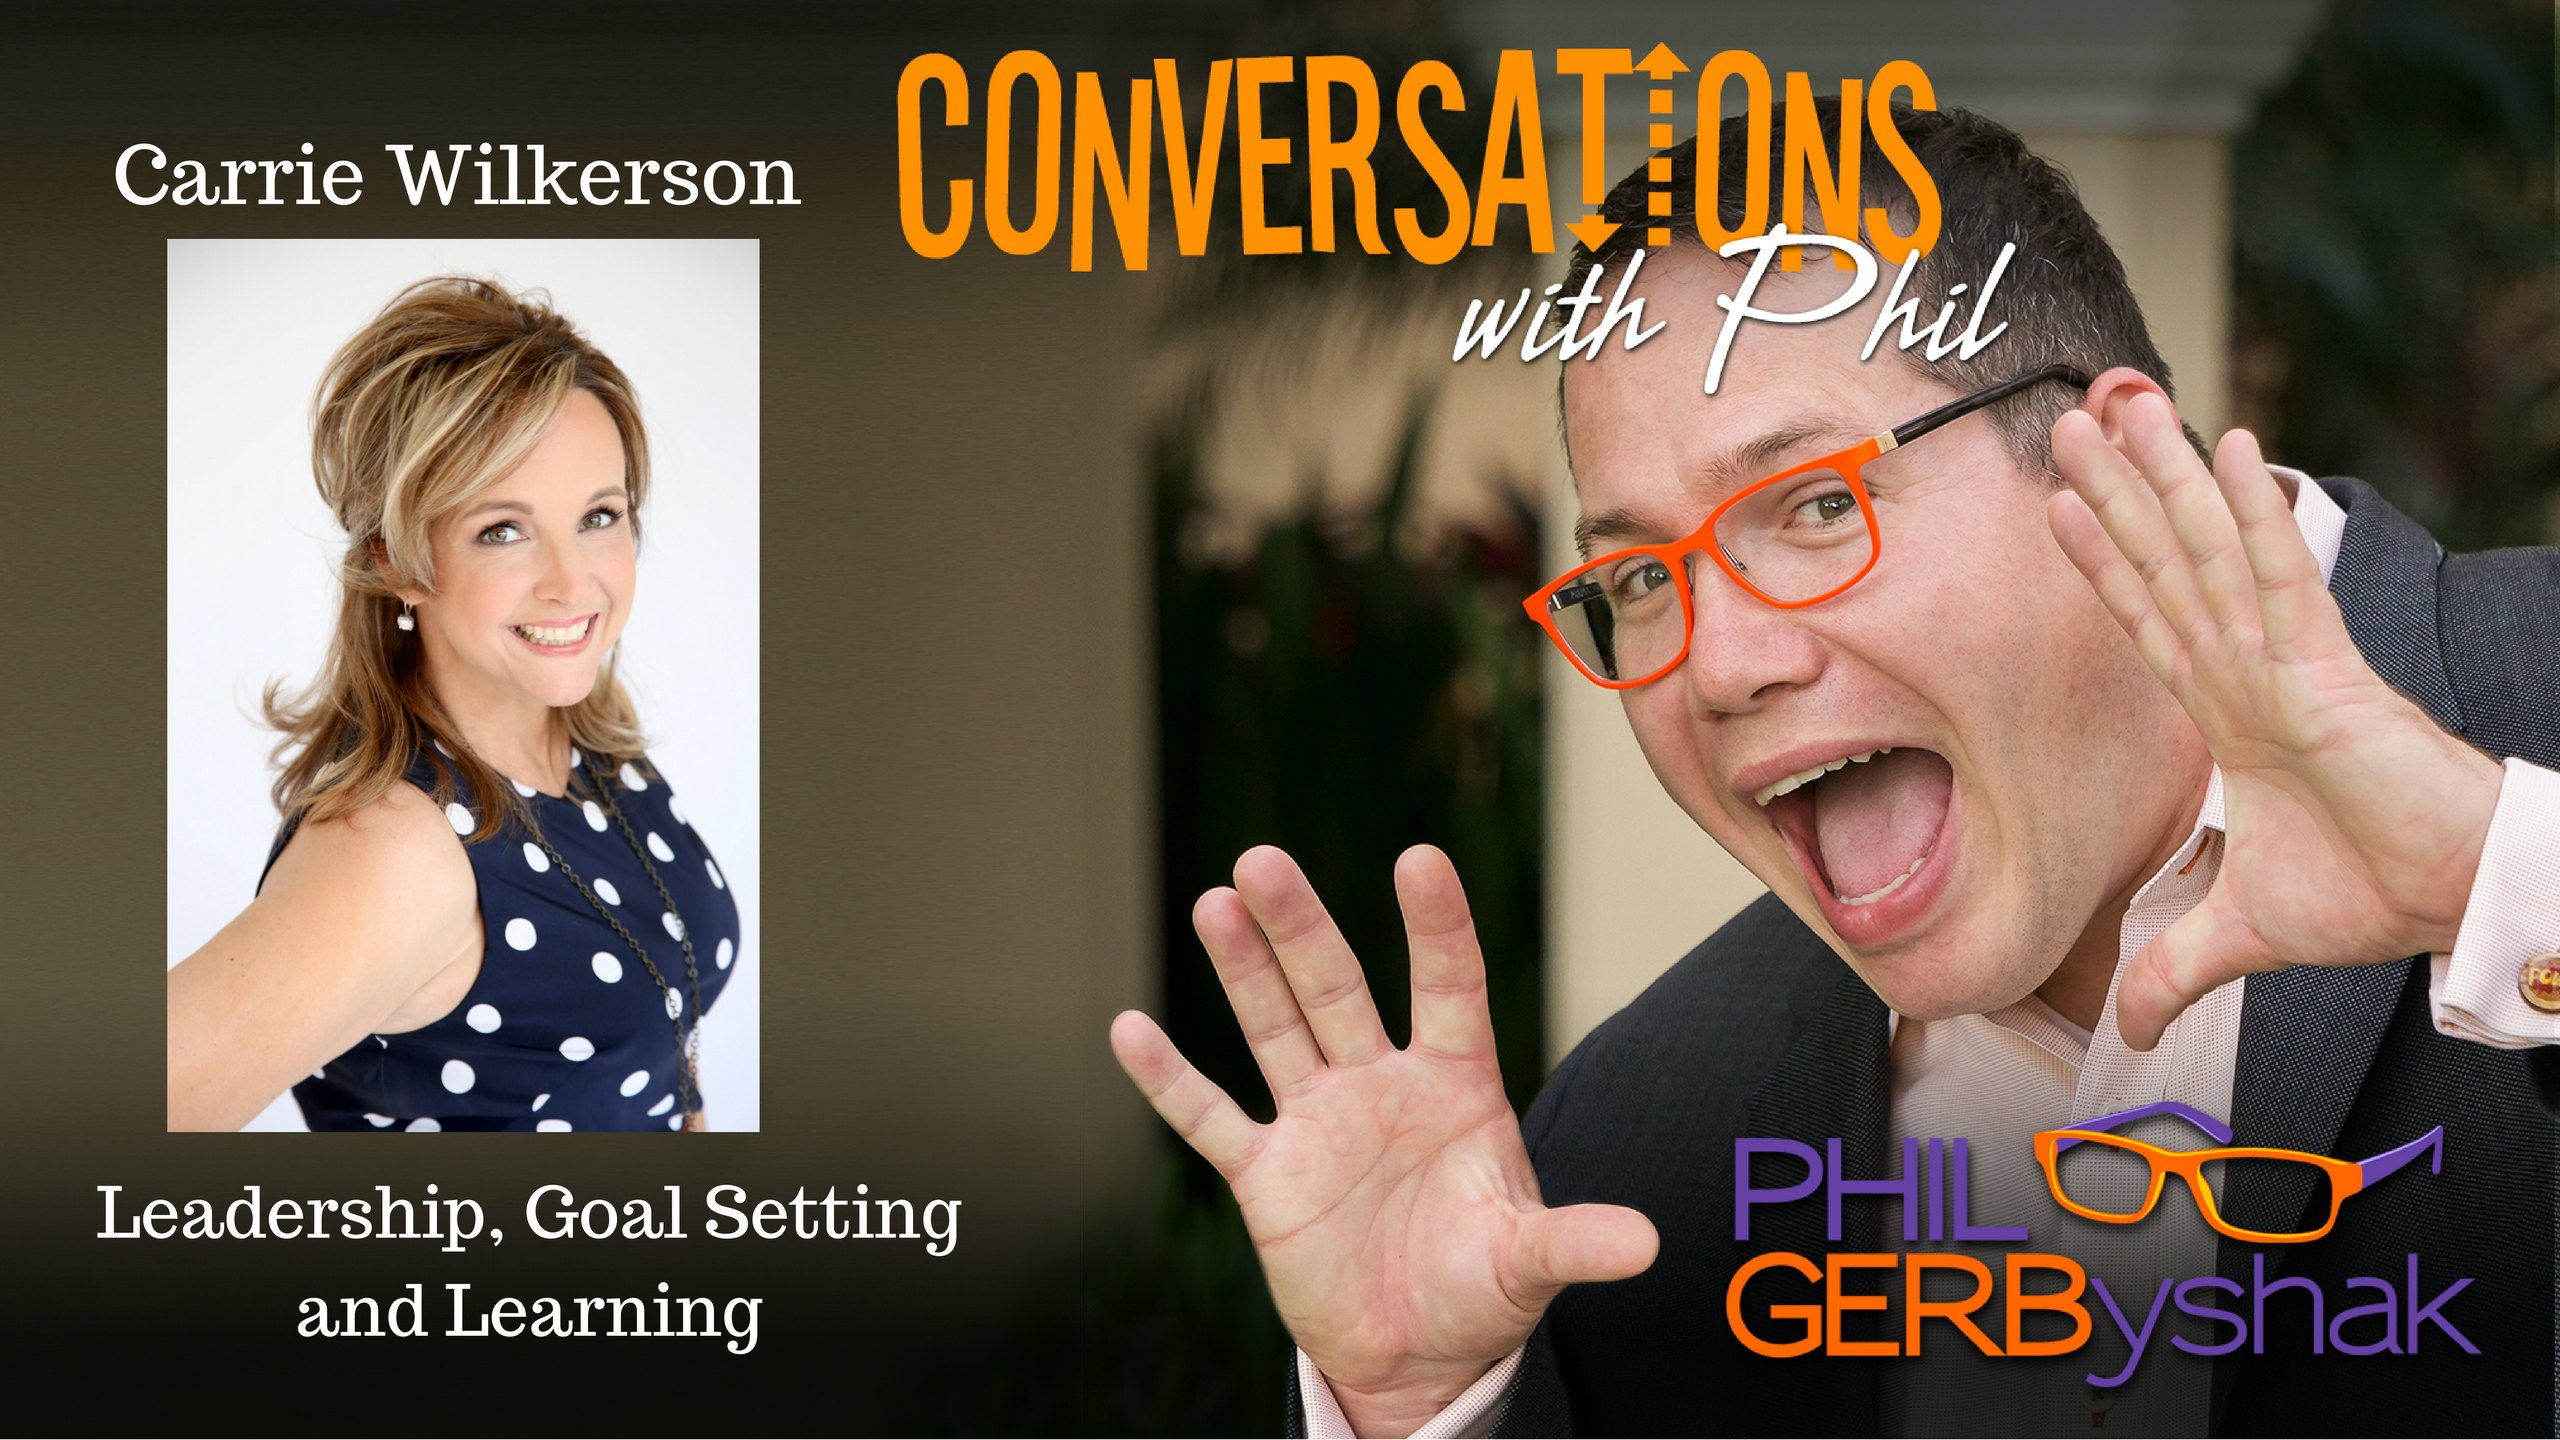 Carrie Wilkerson - Conversations with Phil